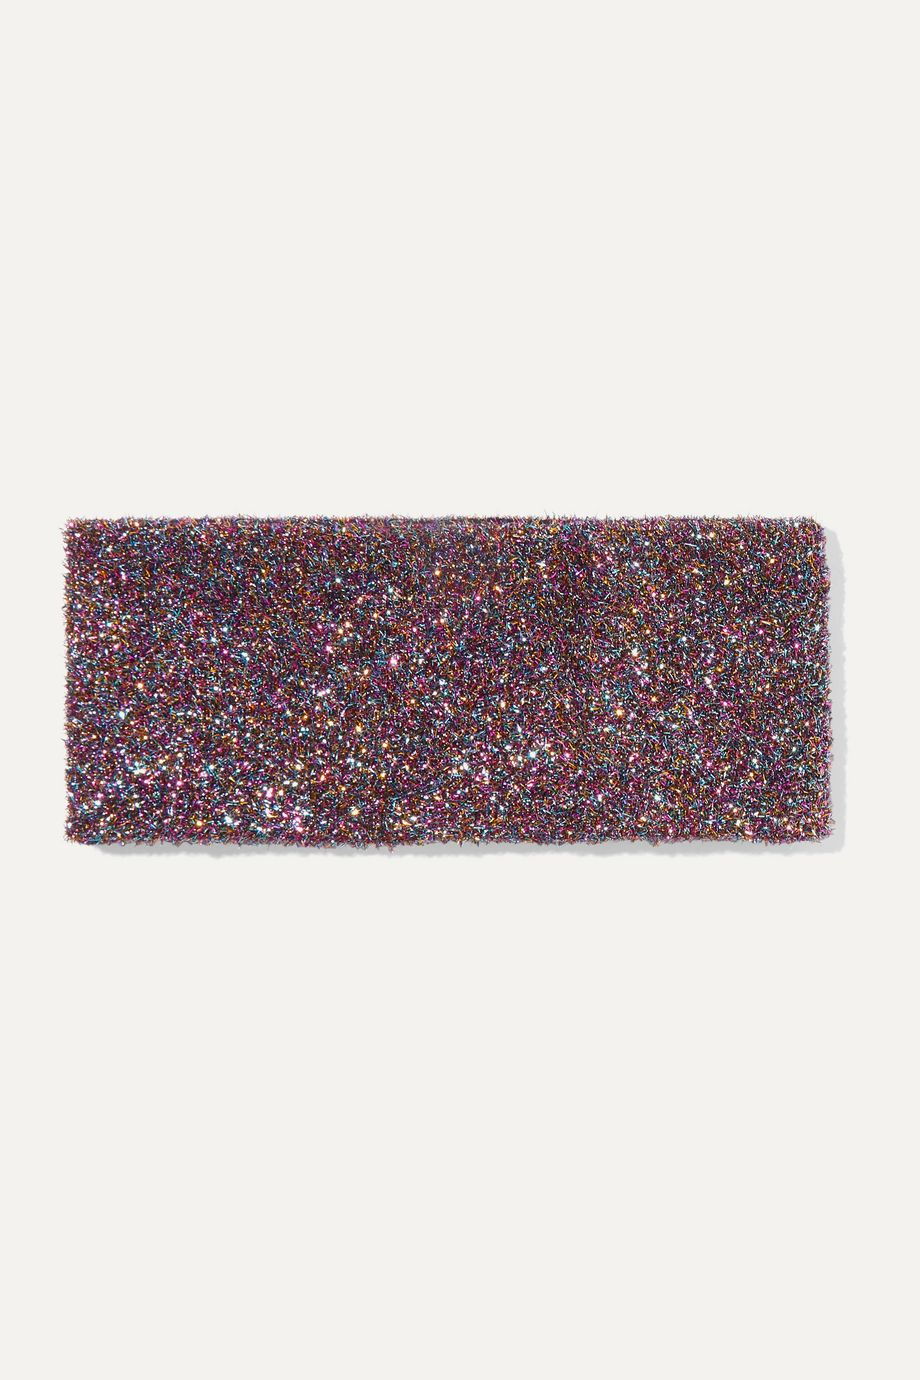 Bella Freud Teeny Bopper metallic knitted headband